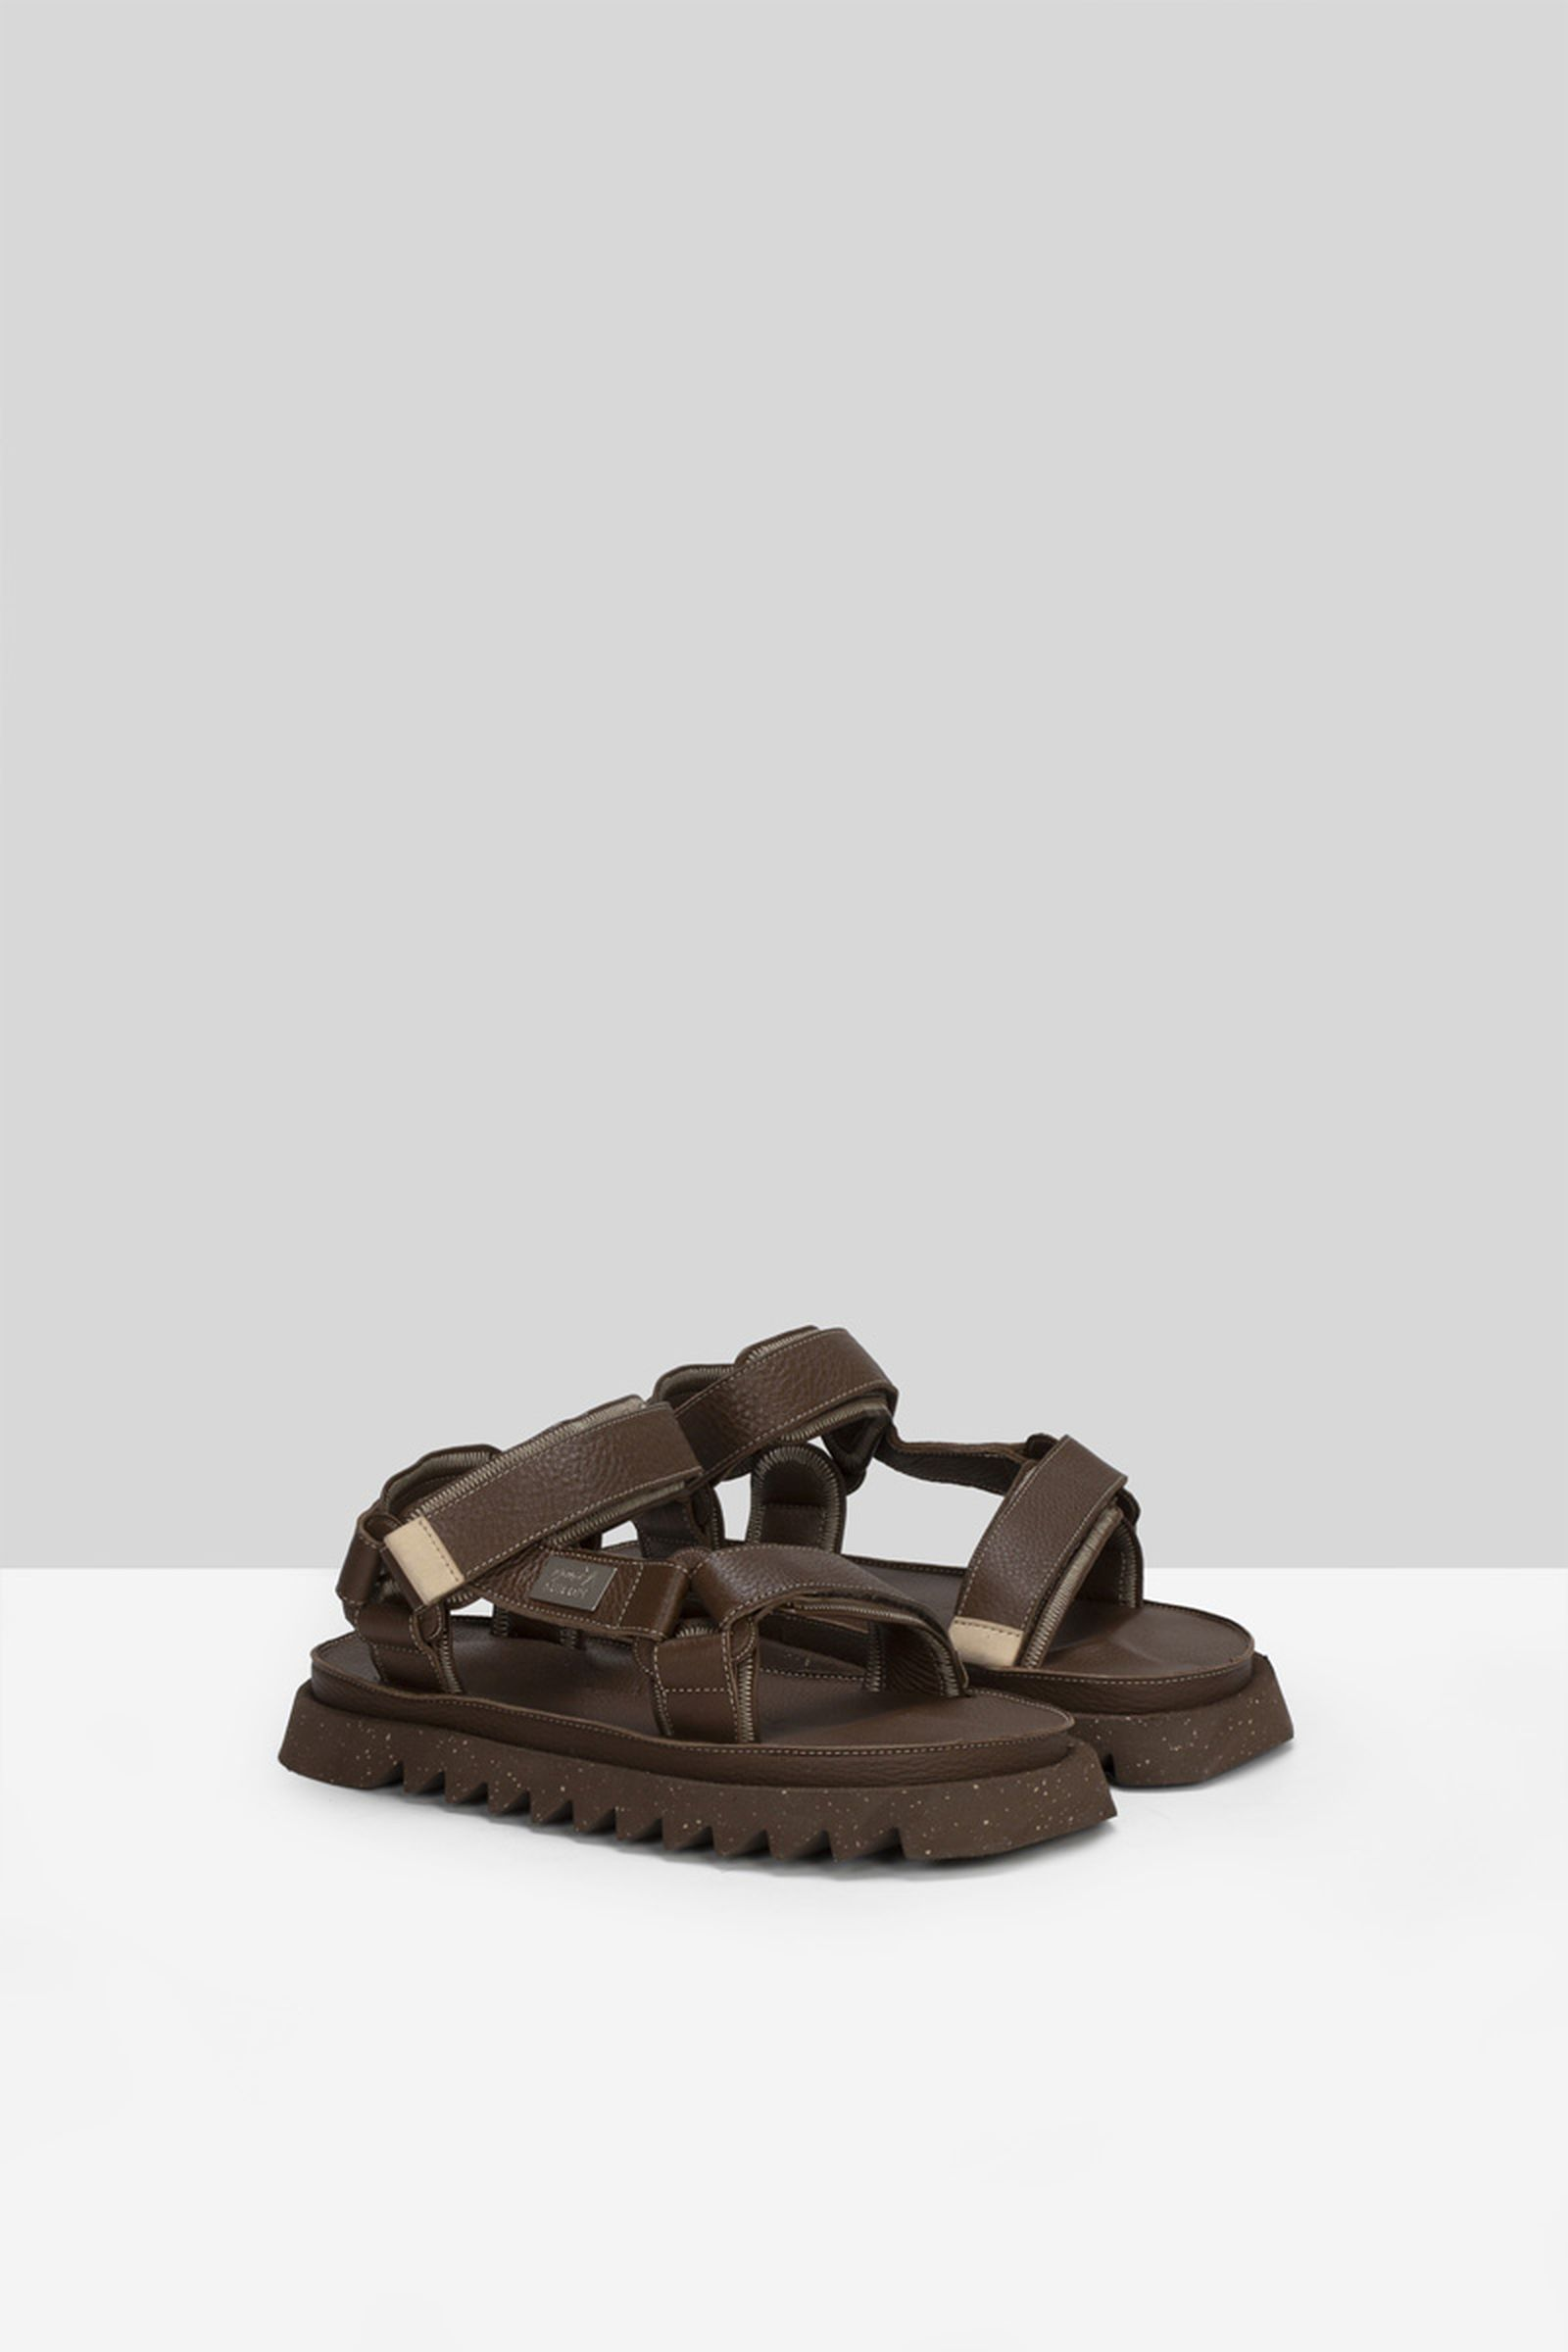 marsell-suicoke-ss21-collection-release-date-price-5